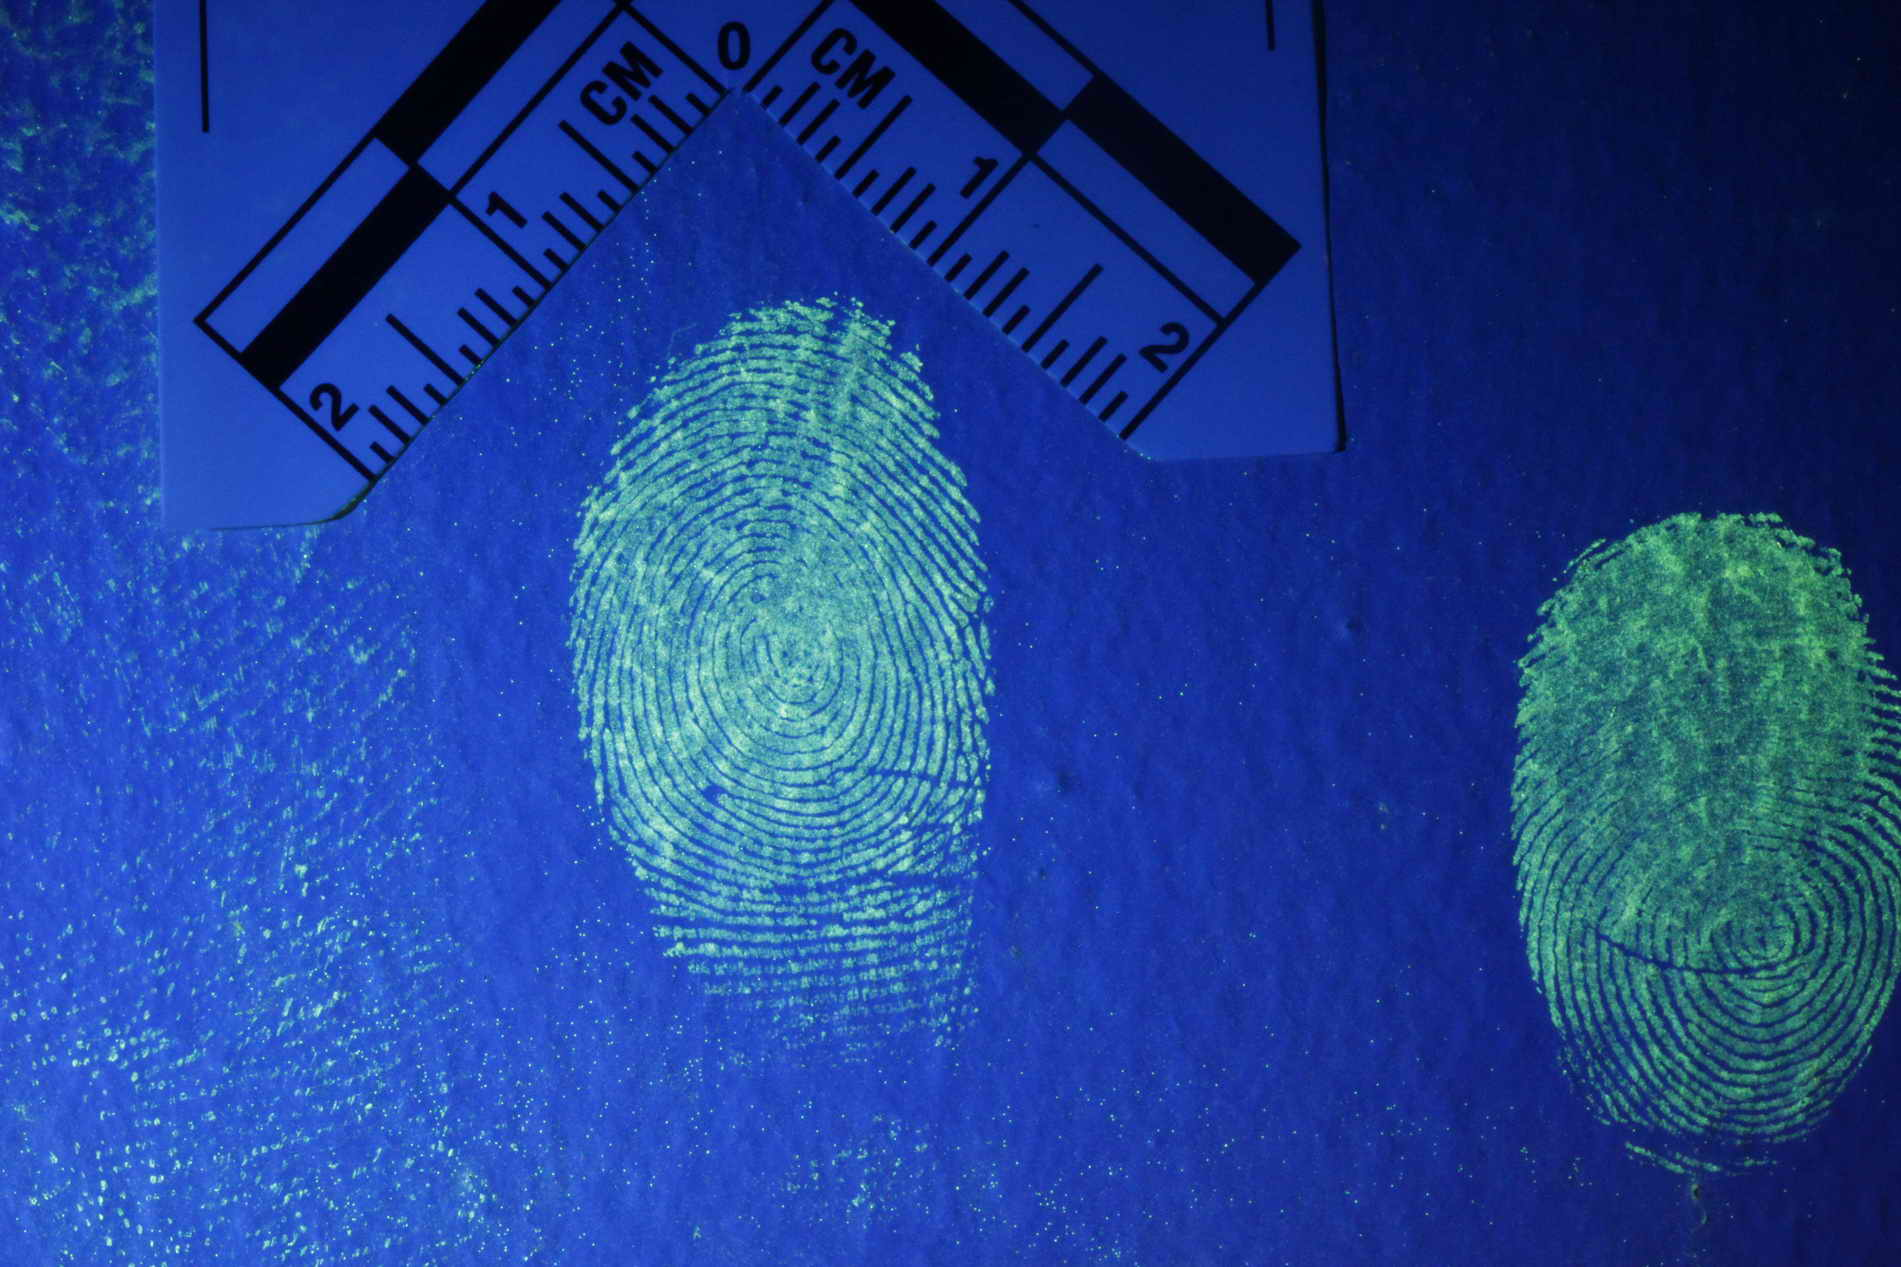 Fingerprints visible with the Polilight forensic lamp, image courtesy Rofin Australia Pty Ltd